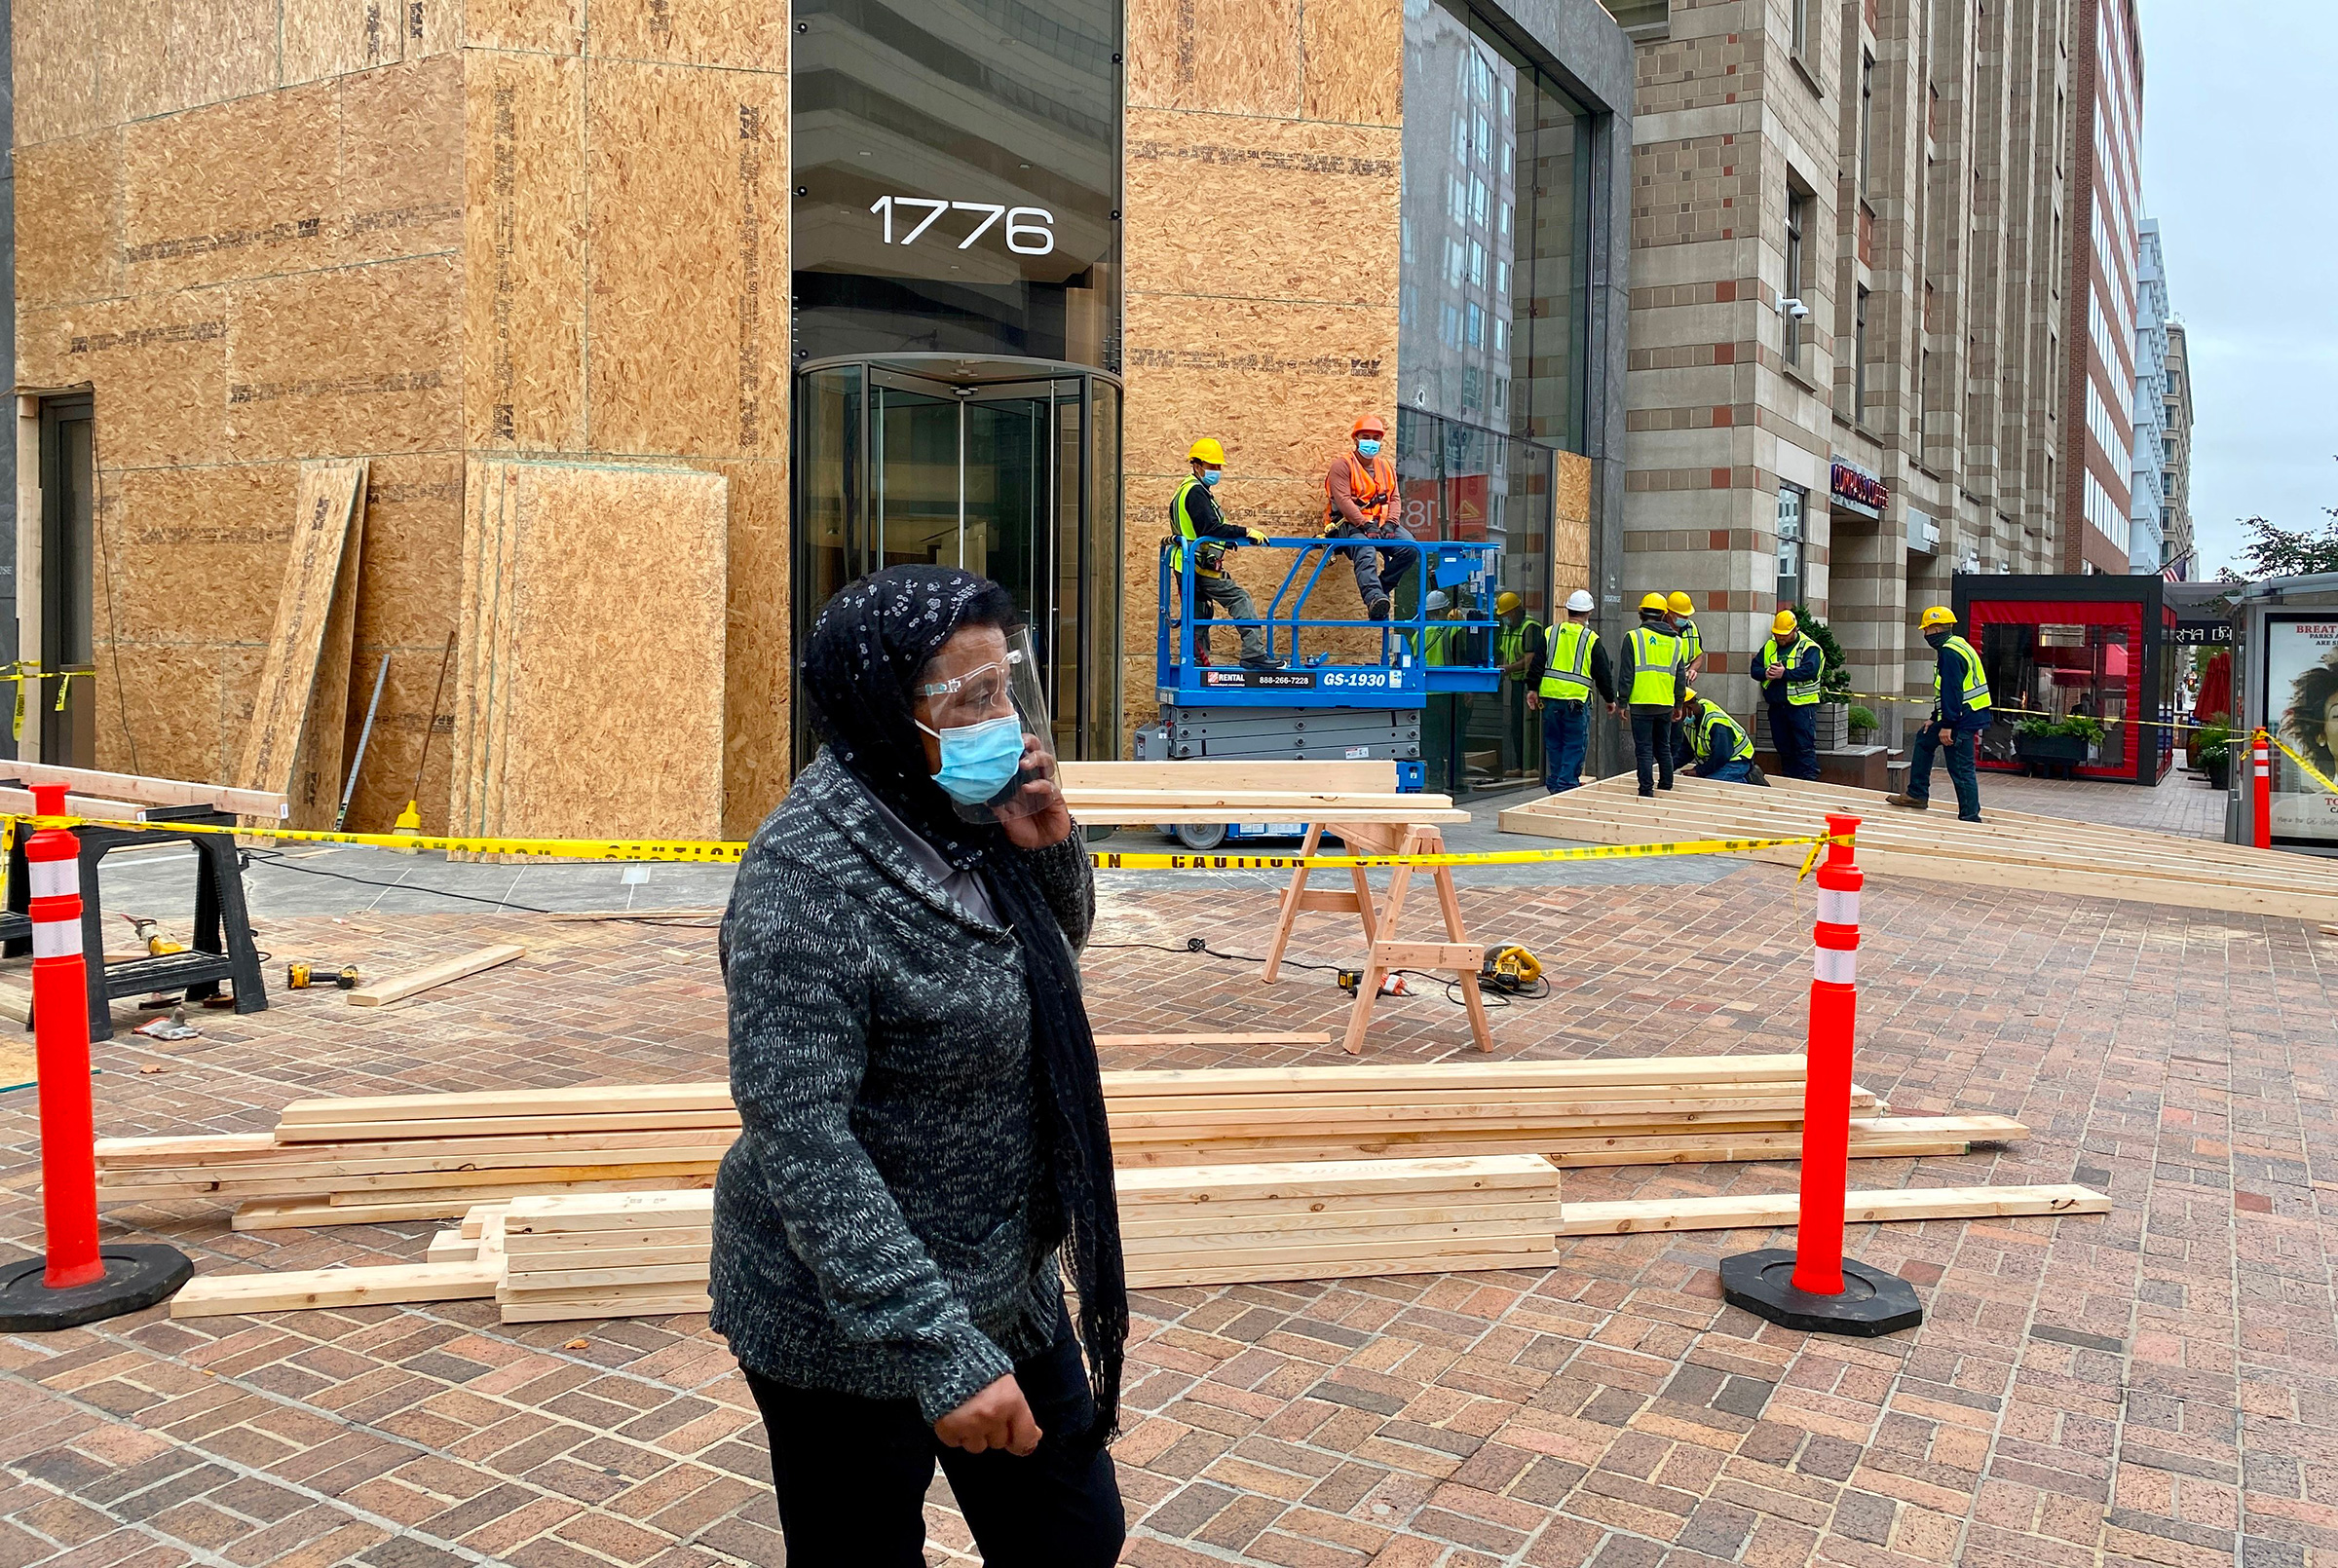 Workers install protections on building facades near the White House as building managers and local businesses fear violent demonstrations ahead of the coming Presidential elections, on Oct. 26